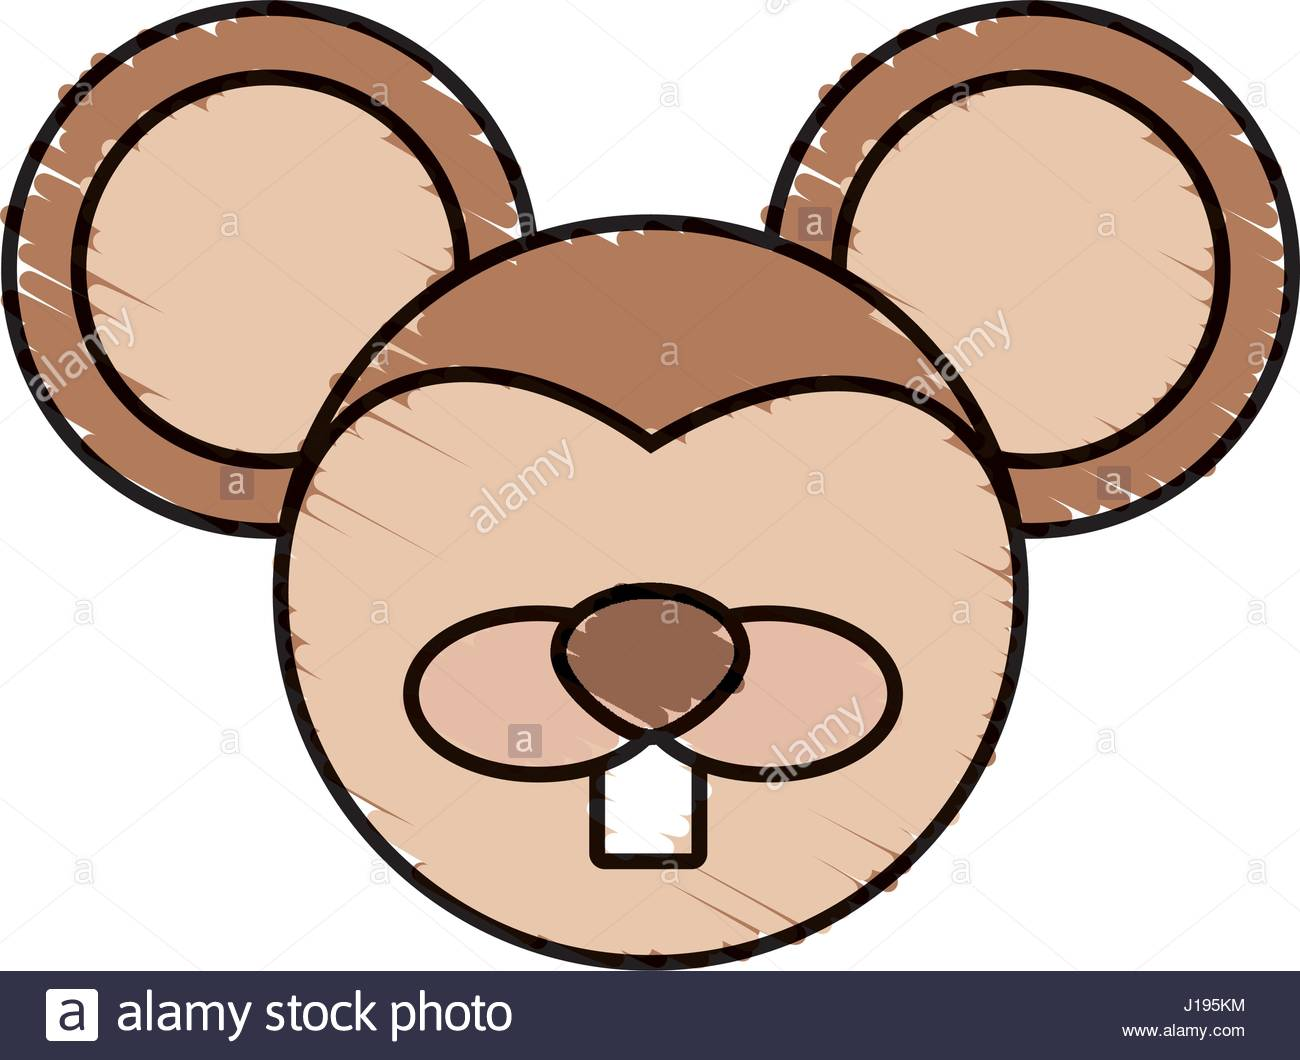 1300x1060 Drawing Mouse Face Animal Stock Vector Art Amp Illustration, Vector